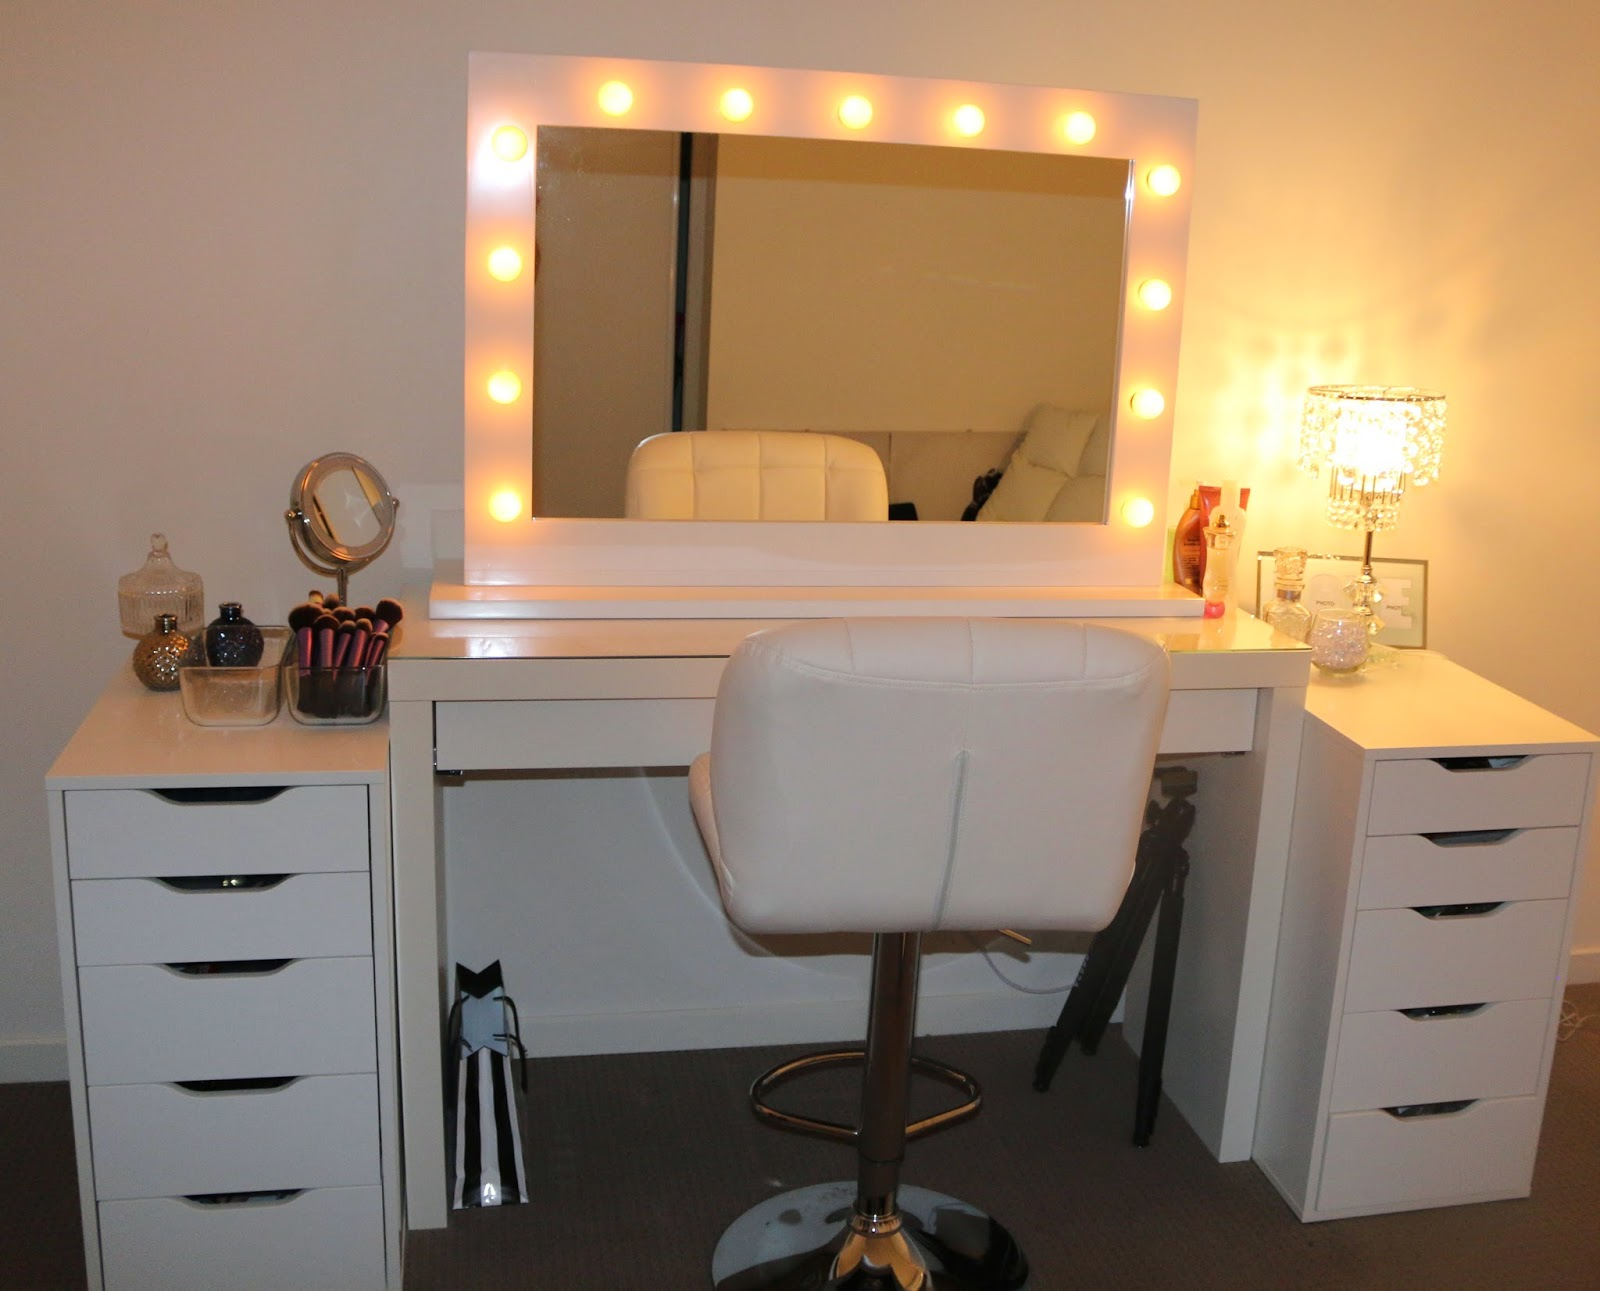 Mirrored Vanity Set | Vanity Mirror and Chair | Cheap Vanity Sets for Bedrooms